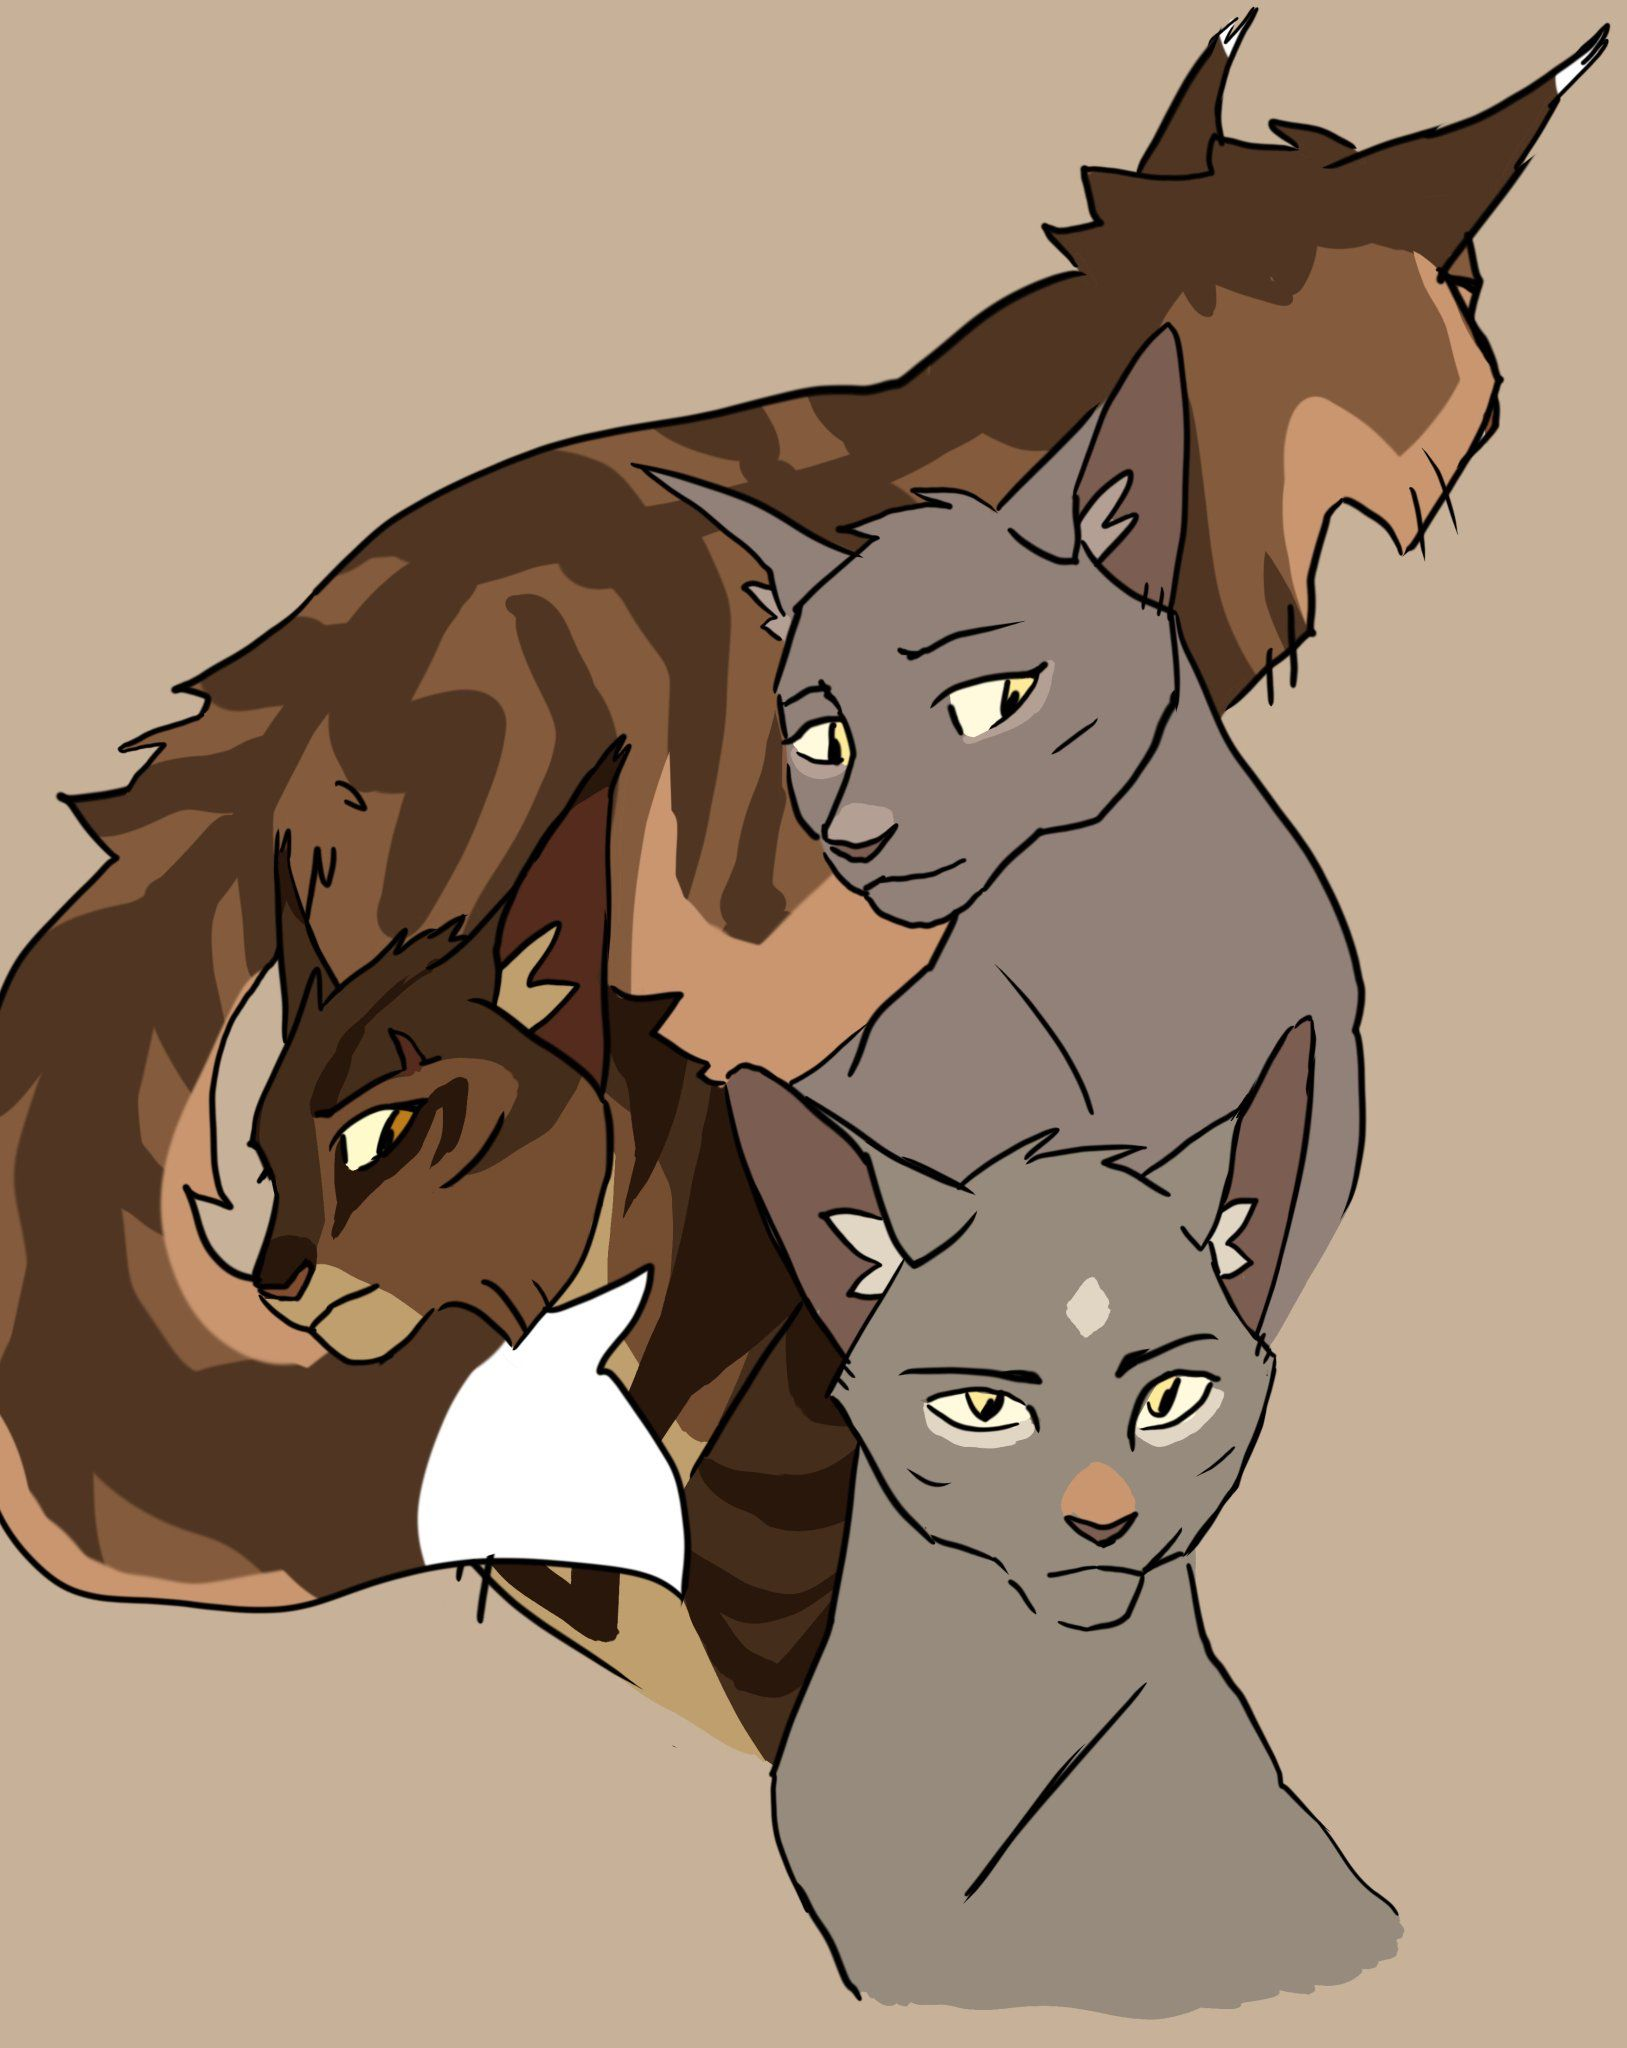 Pin by Tadpole.paarty on Warriors in 2020 Warrior cats